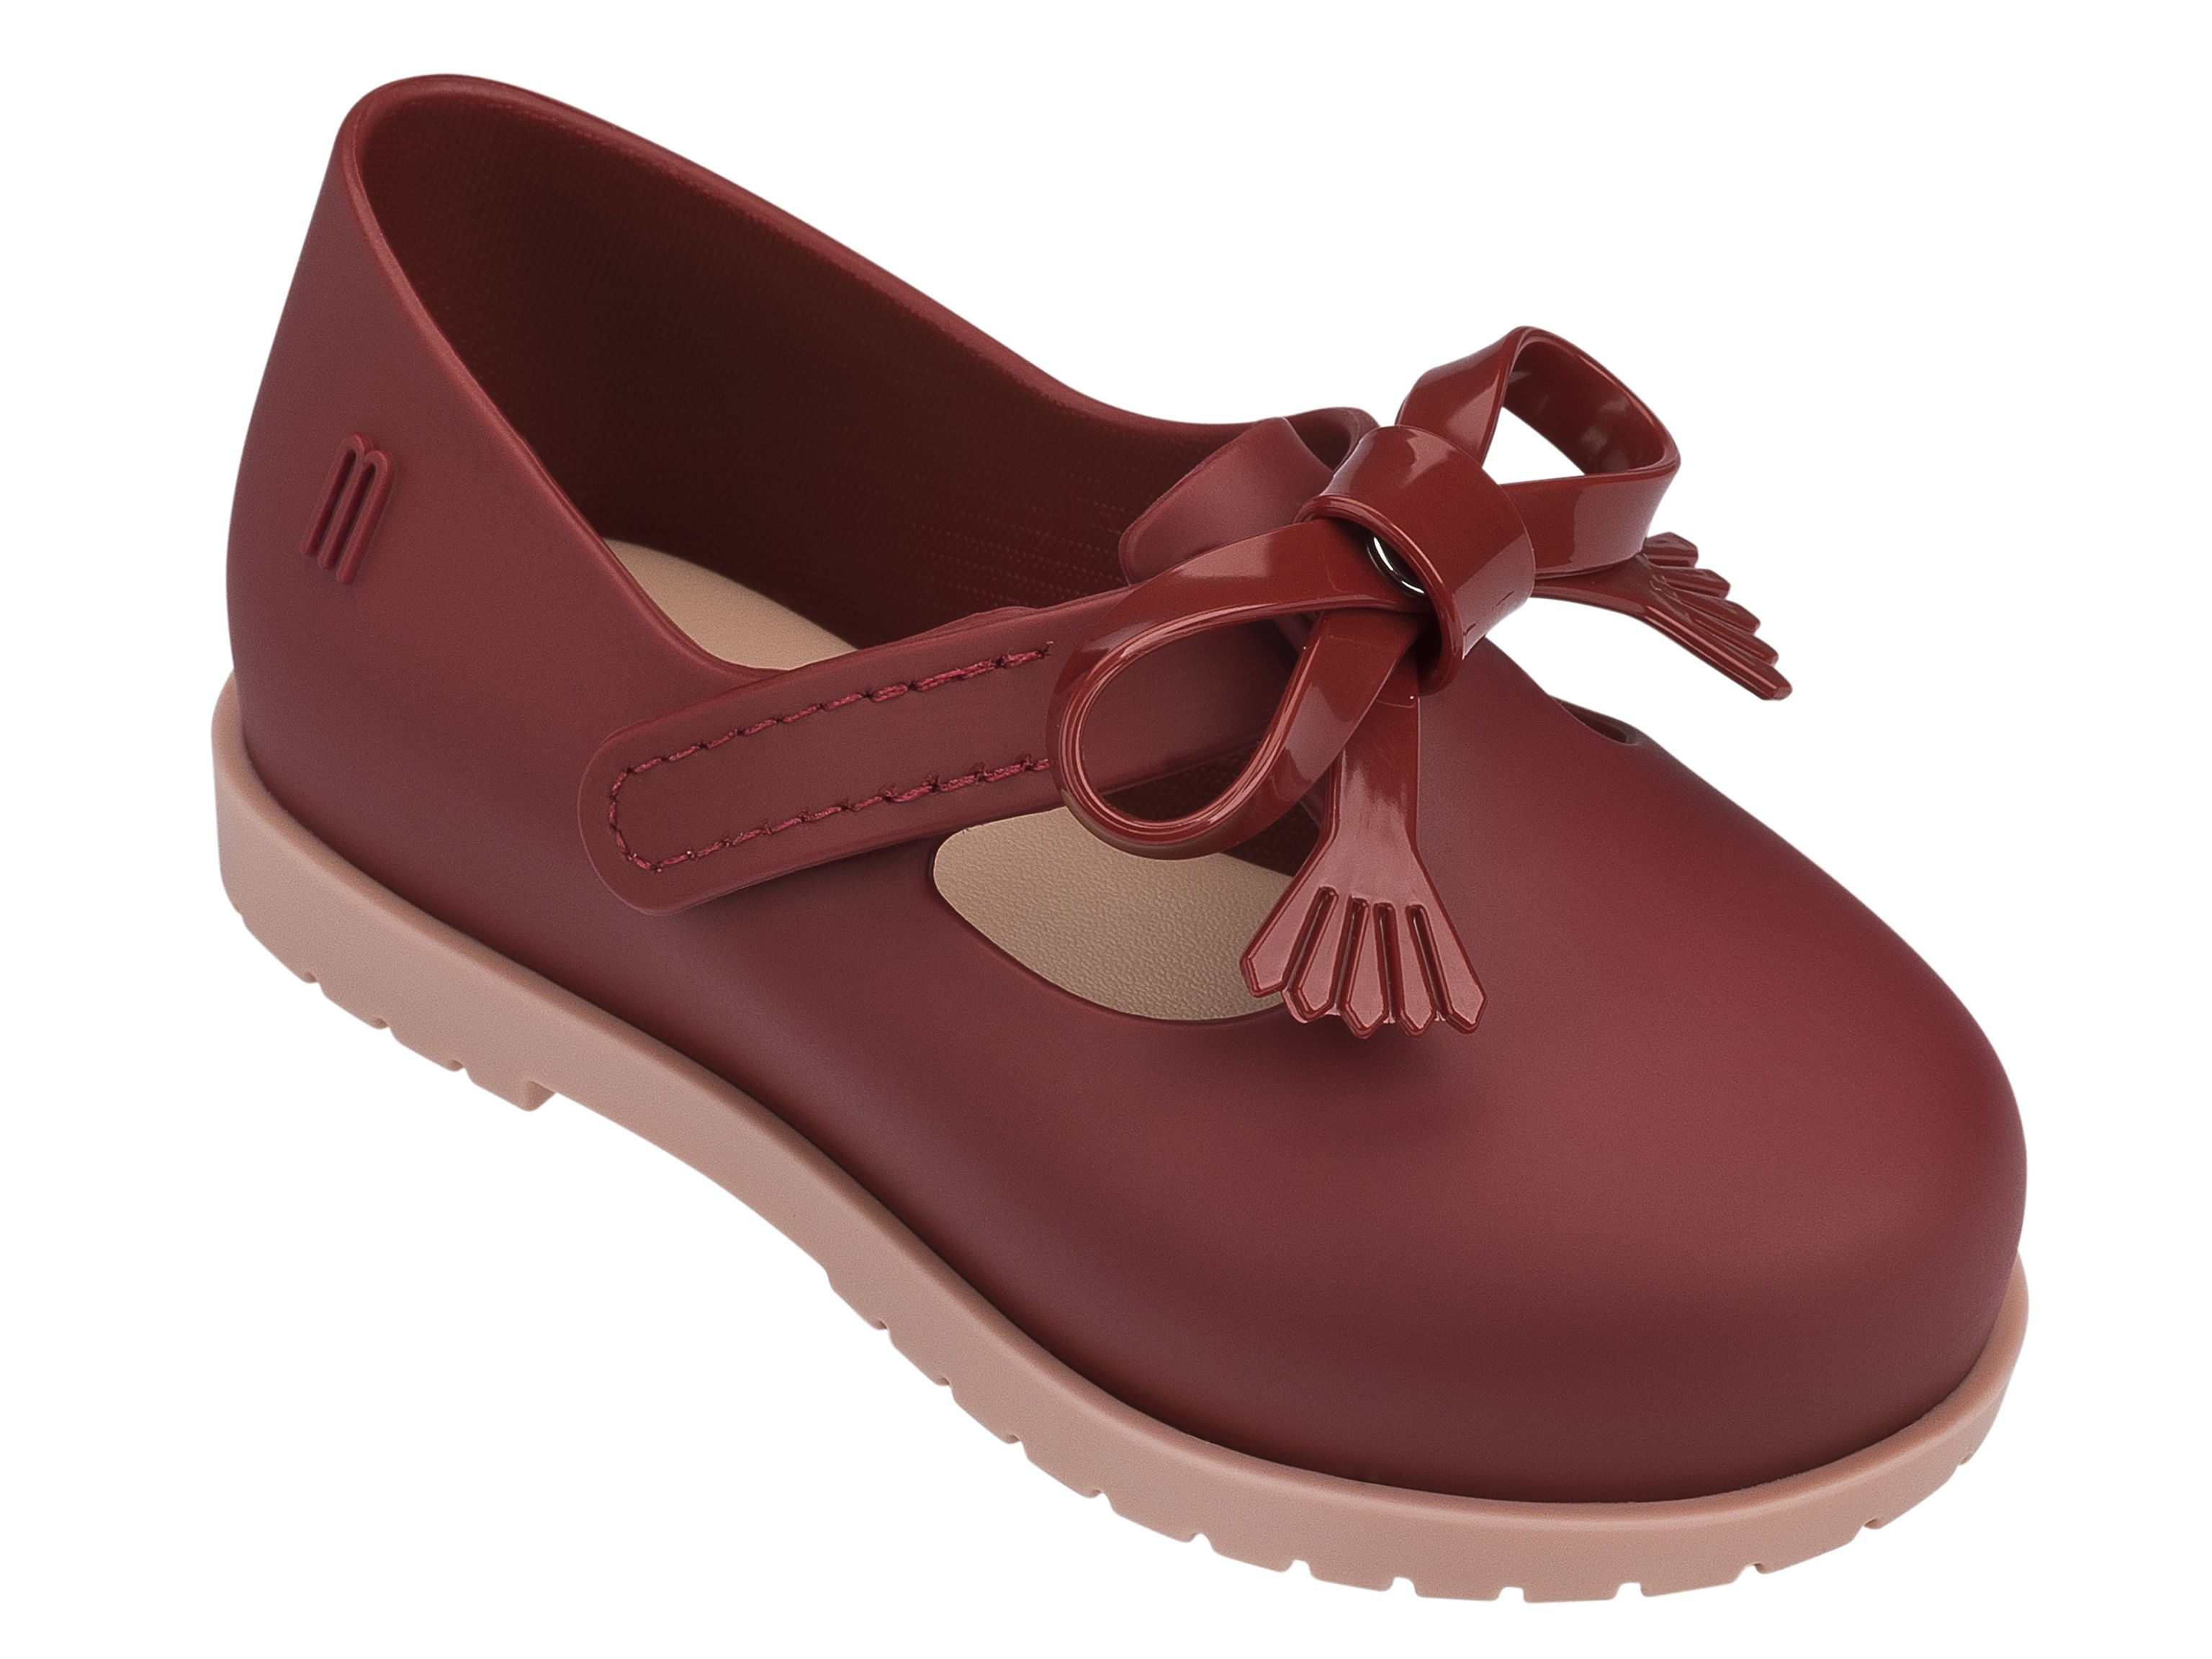 MINI MELISSA CLASSIC BABY of in Melissa South Africa